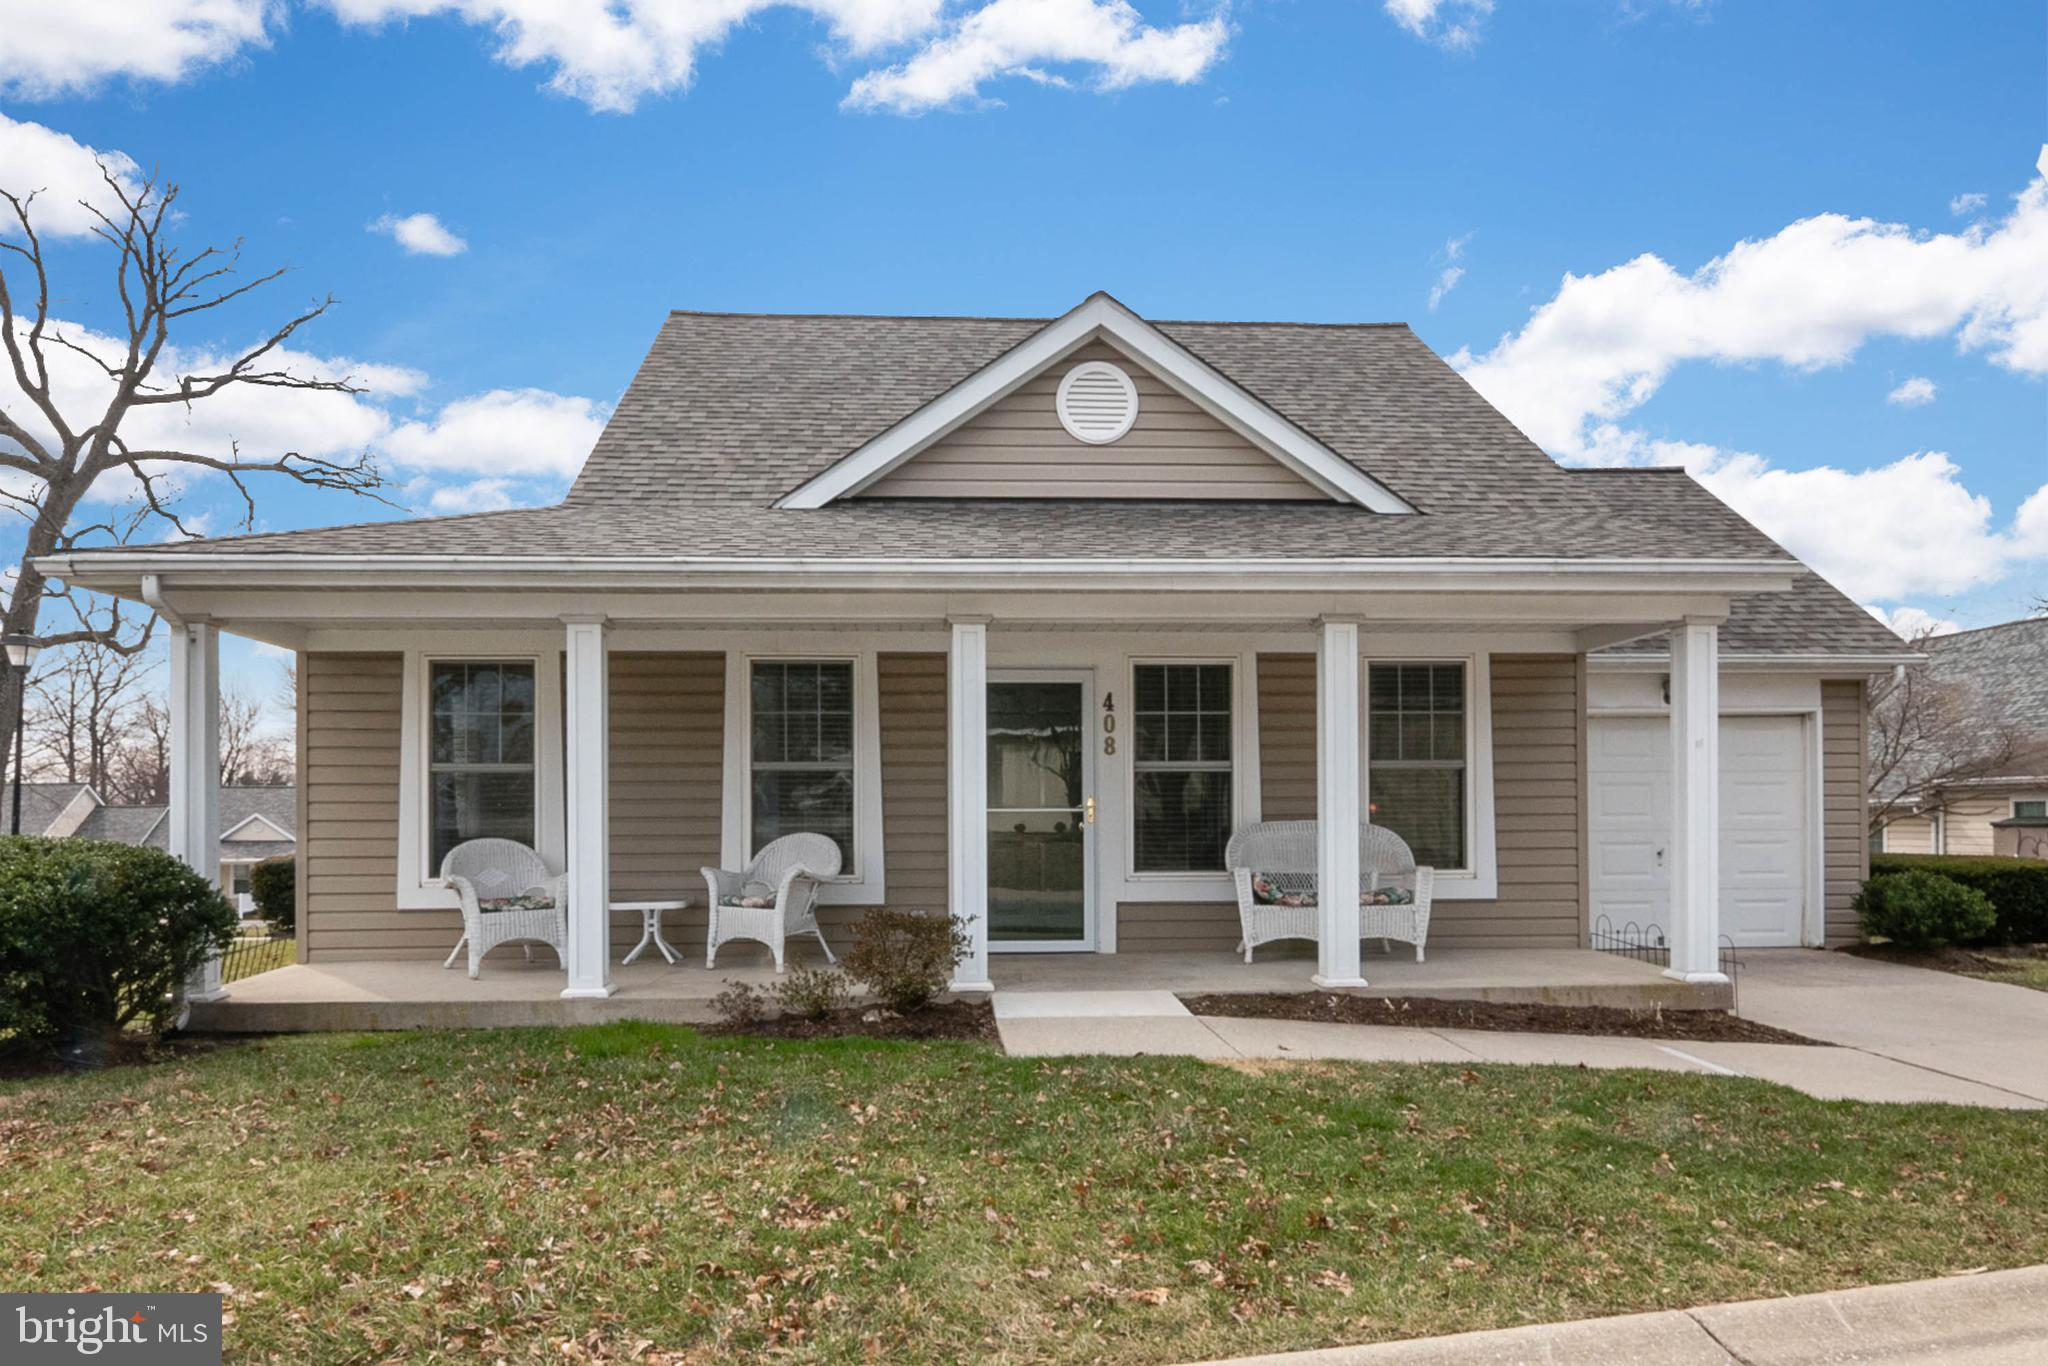 OPEN HOUSE SUNDAY, FEBRUARY 23RD FROM 1-3 PM.  Be the first to see this lovely rancher situated with